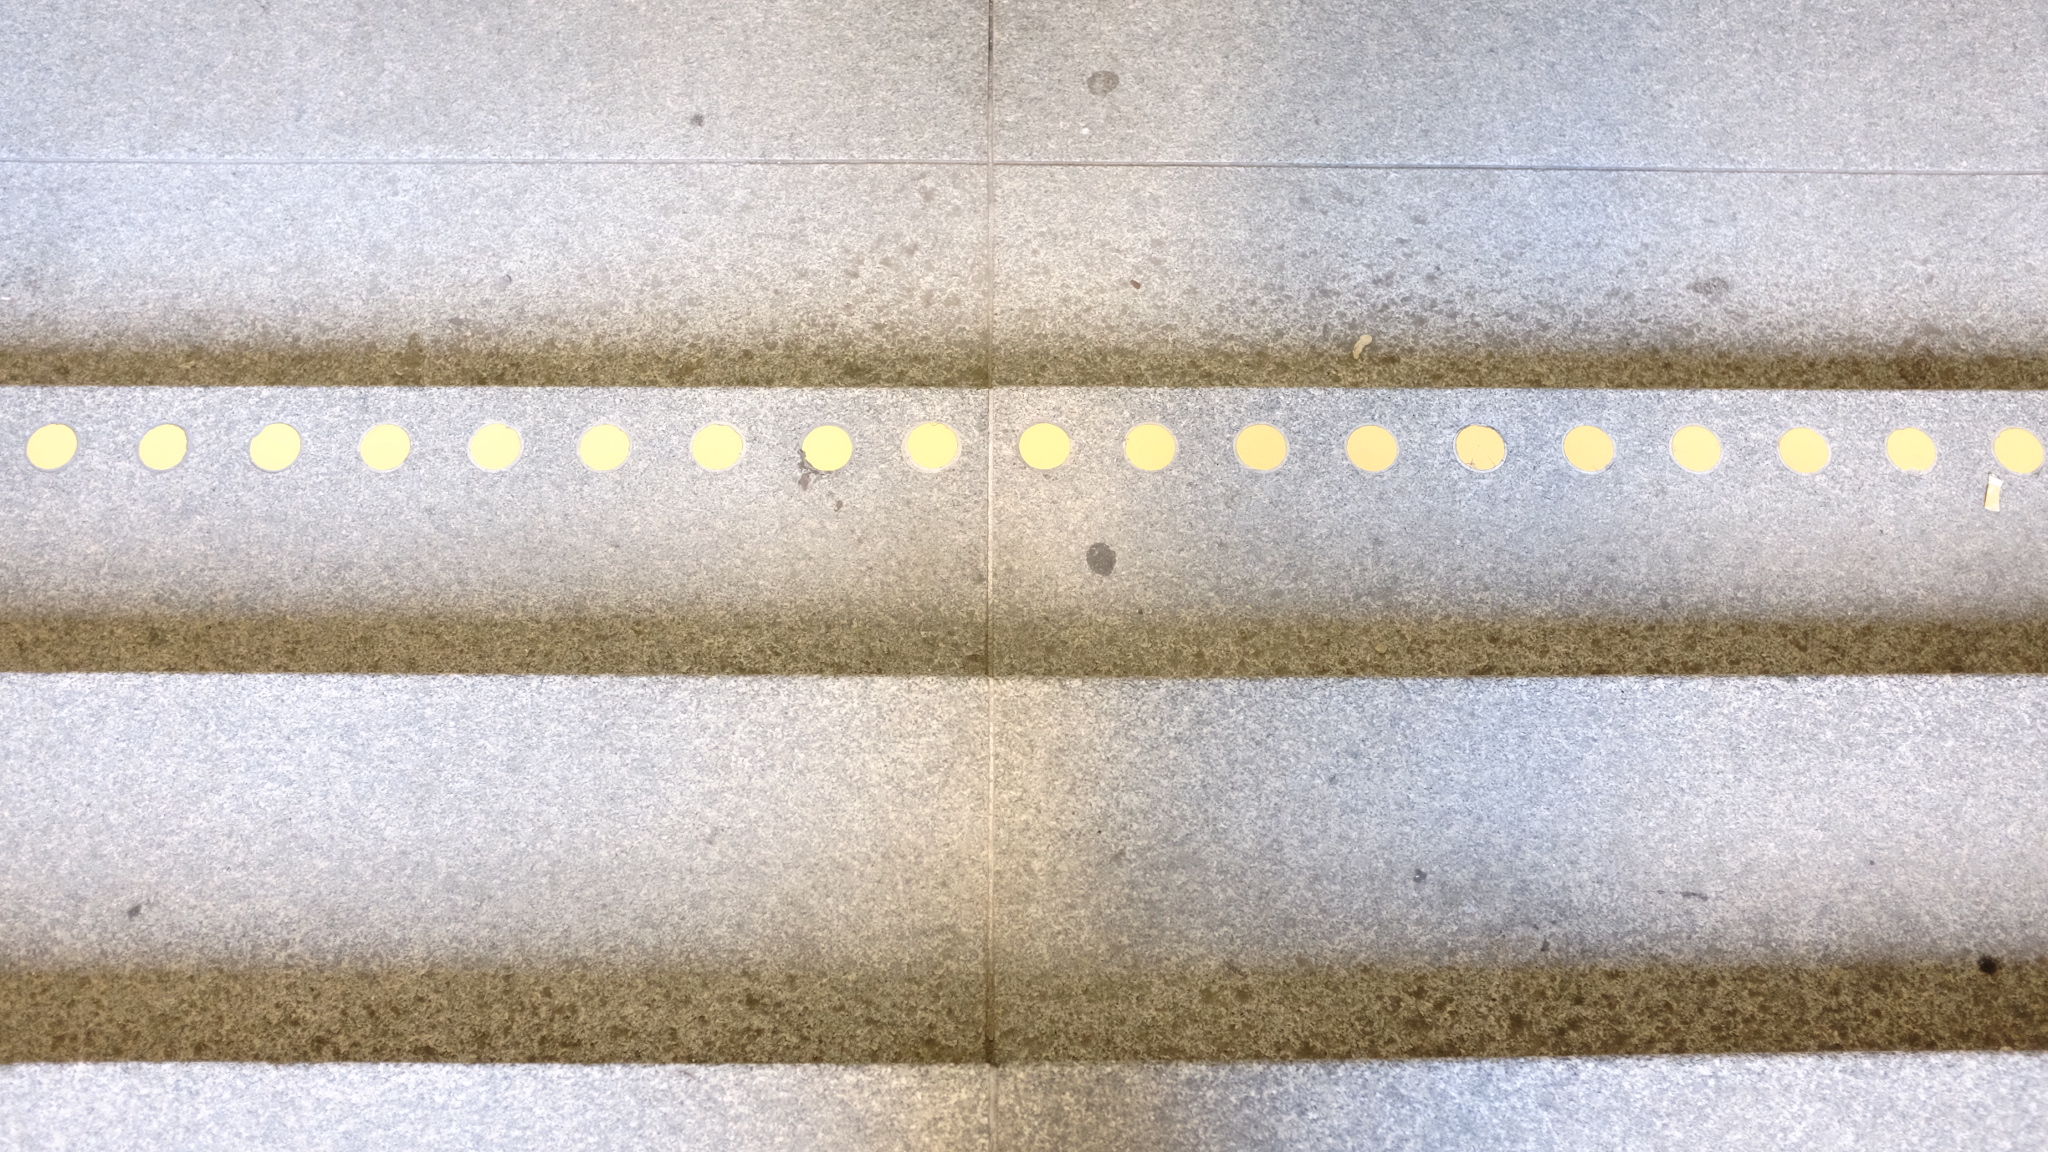 Dots and Stripes, Wien 2019